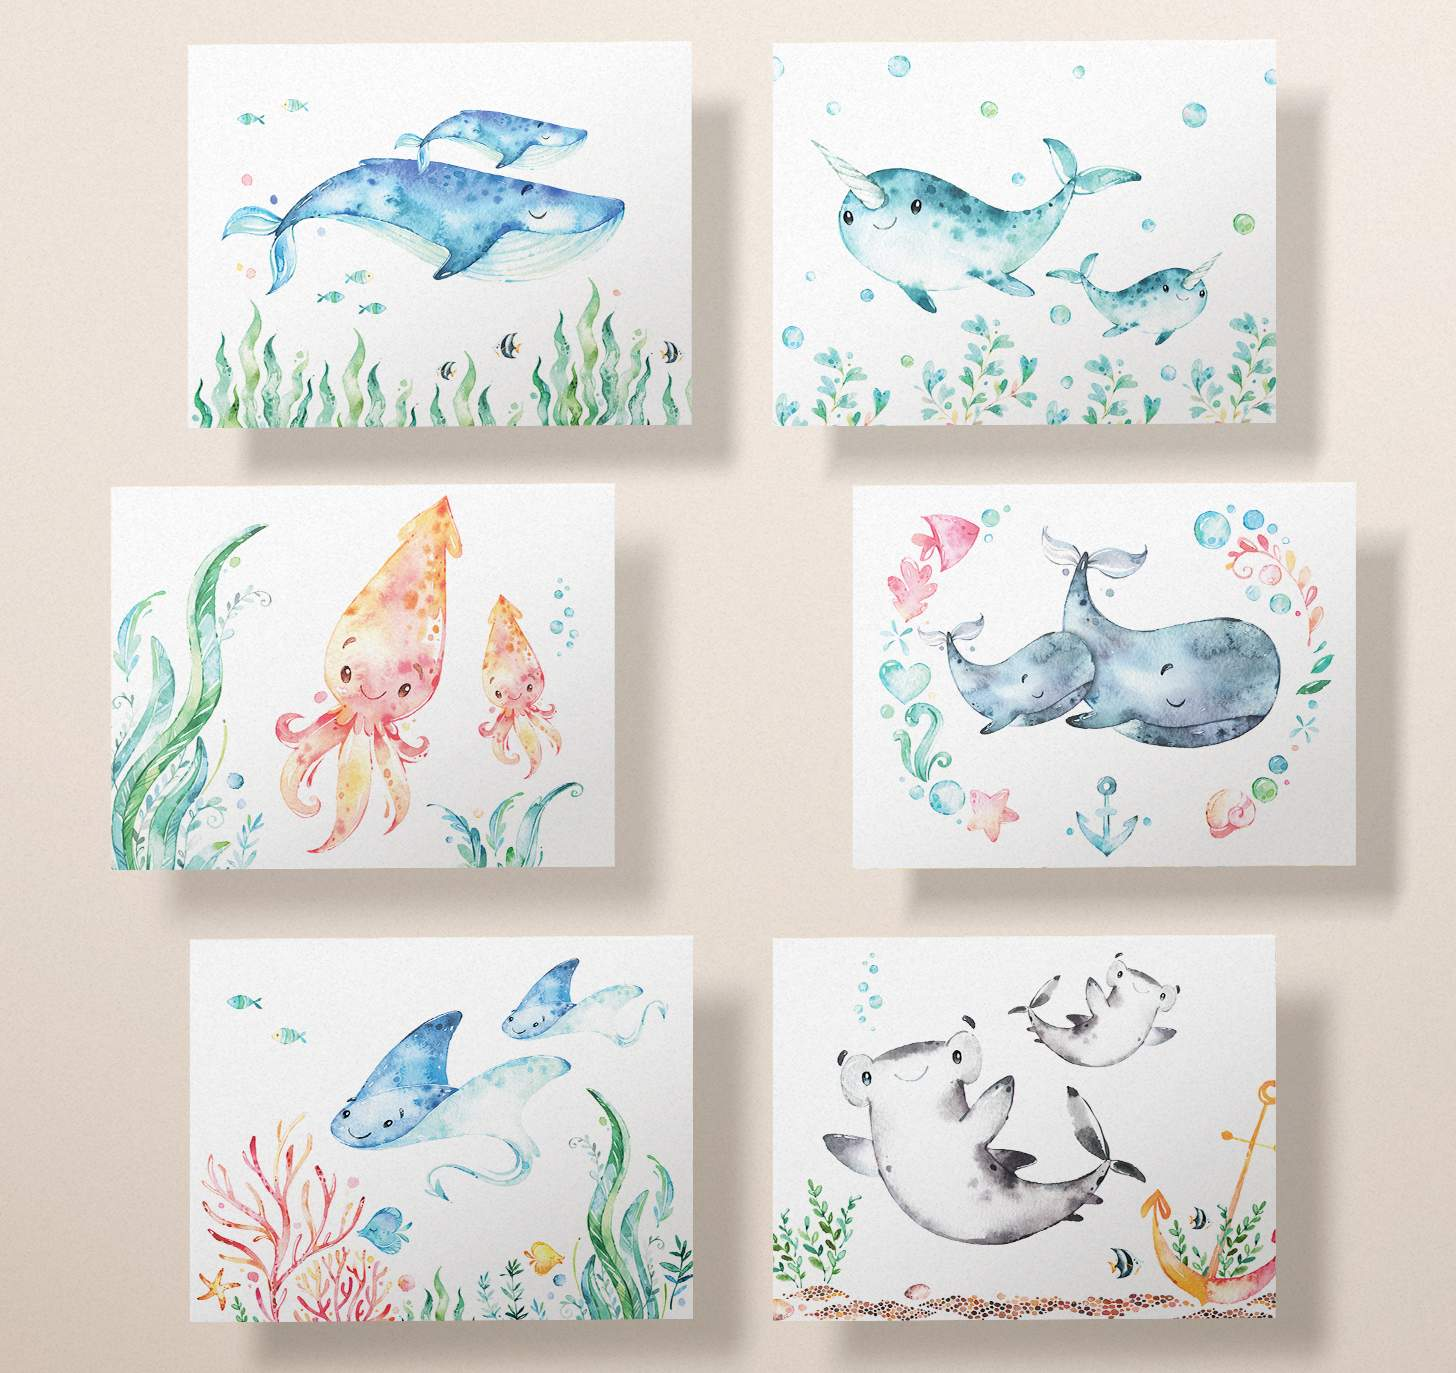 Six cards featuring mother and baby blue whale, gray whale, sting ray, squid, narwhal, and shark designs on a pink background